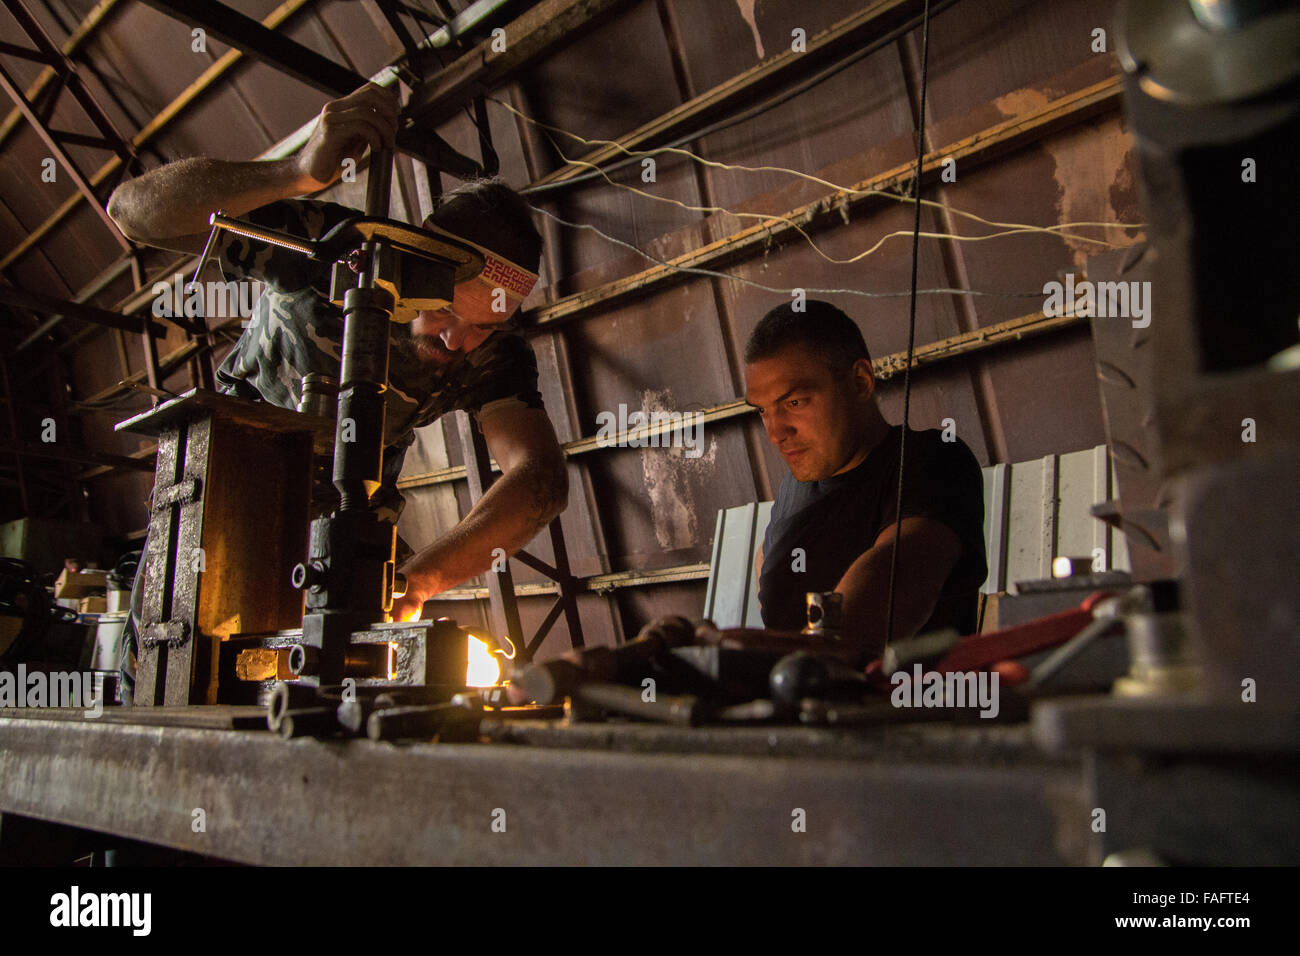 Vasily and Stanislav restoring assembly stand for German motorcycle at the Museum of Industrial Culture in Moscow. - Stock Image